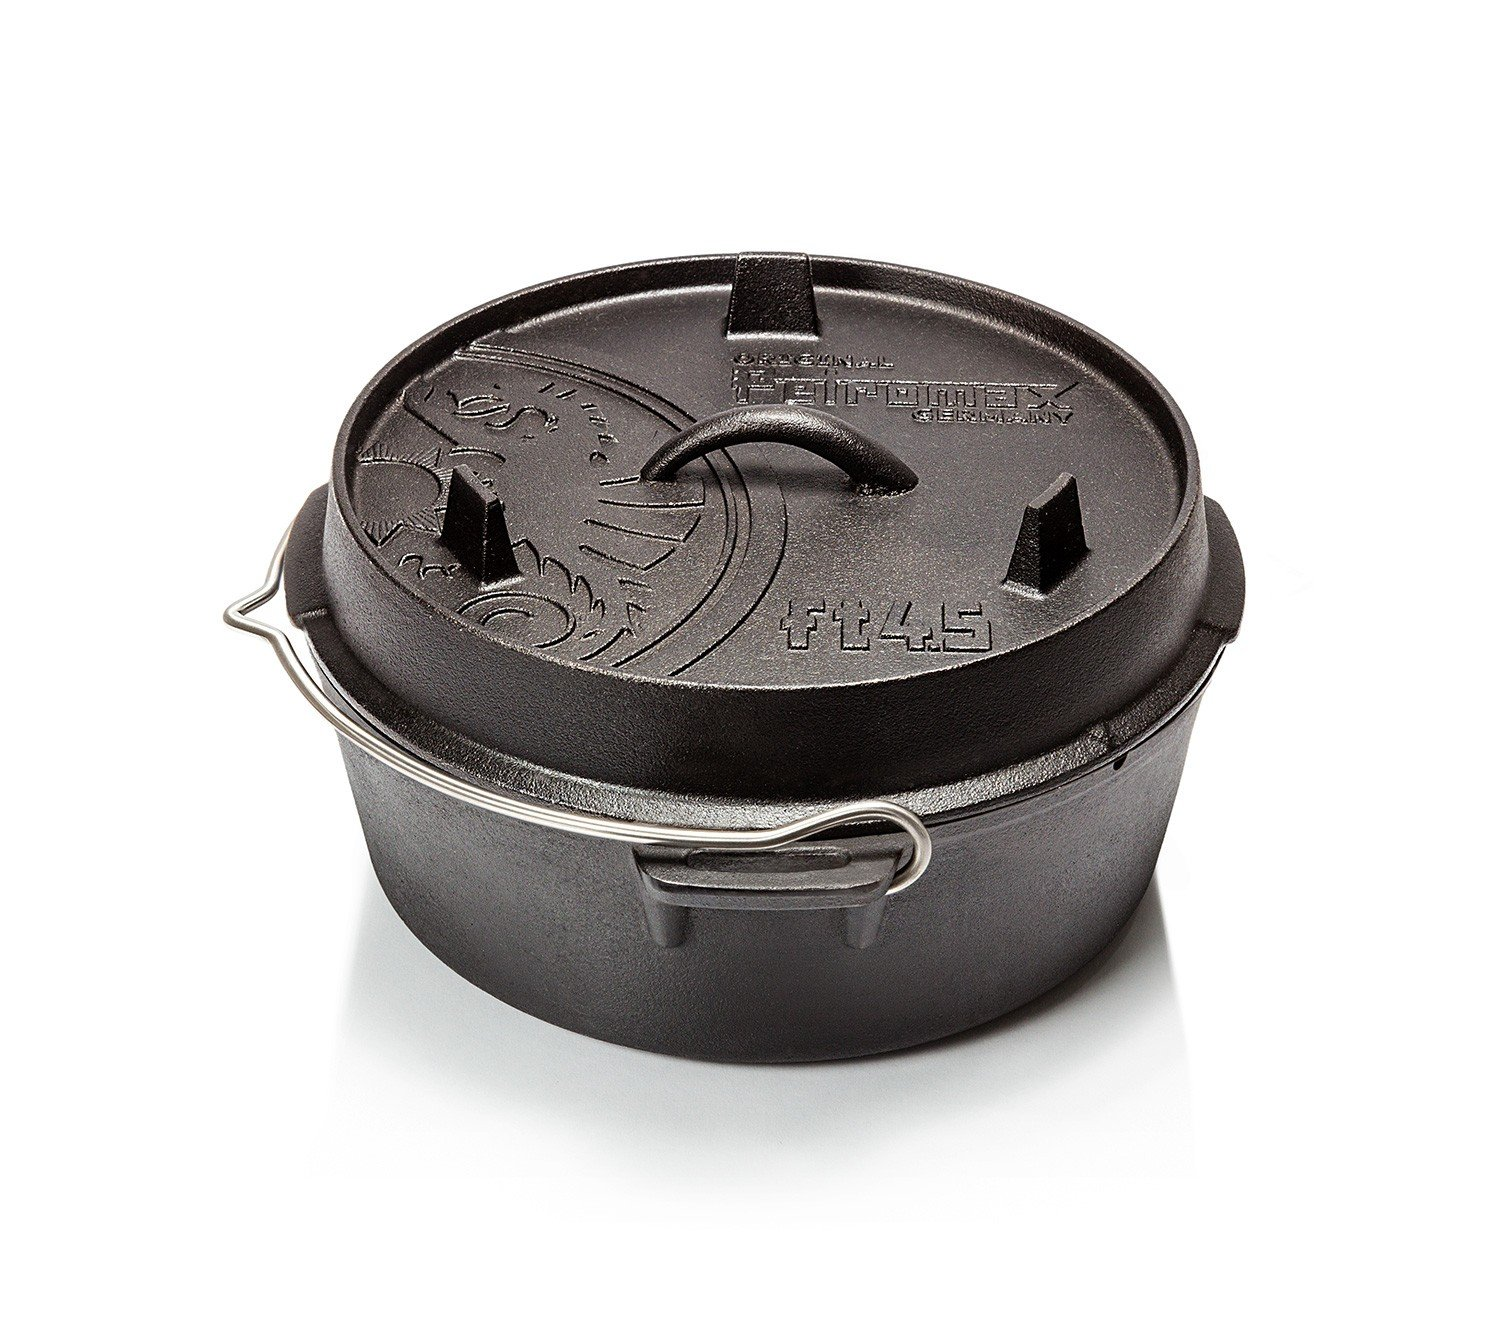 Petromax Cast Iron Dutch Oven with Flat Base - 3.7 Qt